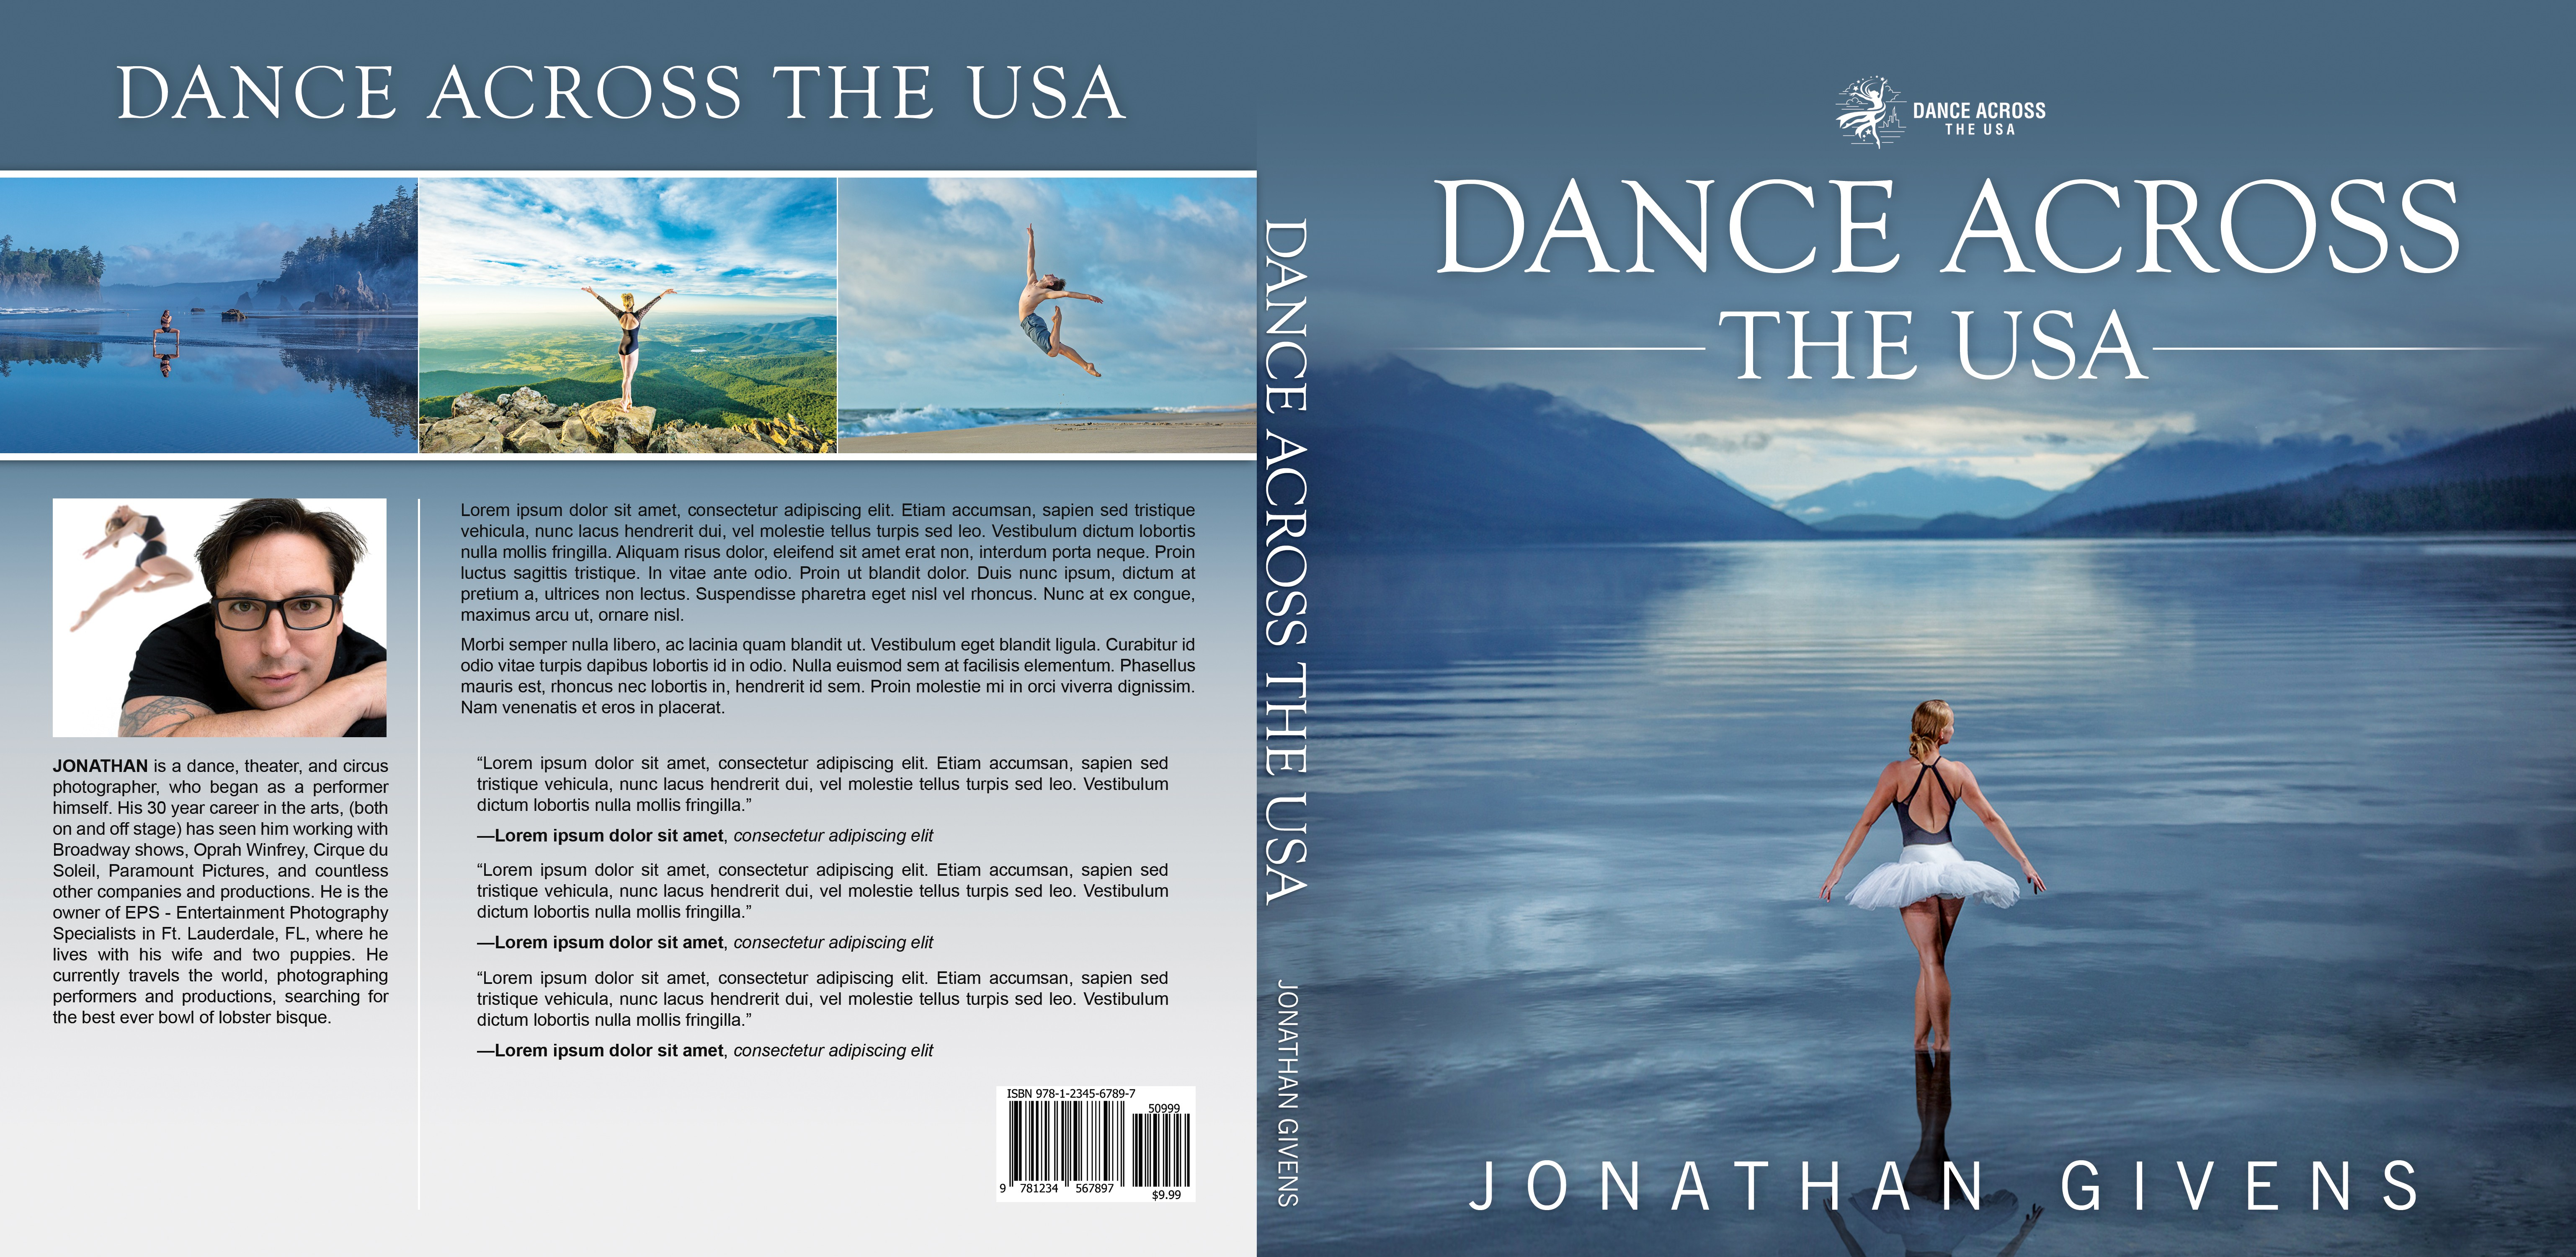 Dance Across the USA book cover contest - soon to be a Best Seller!